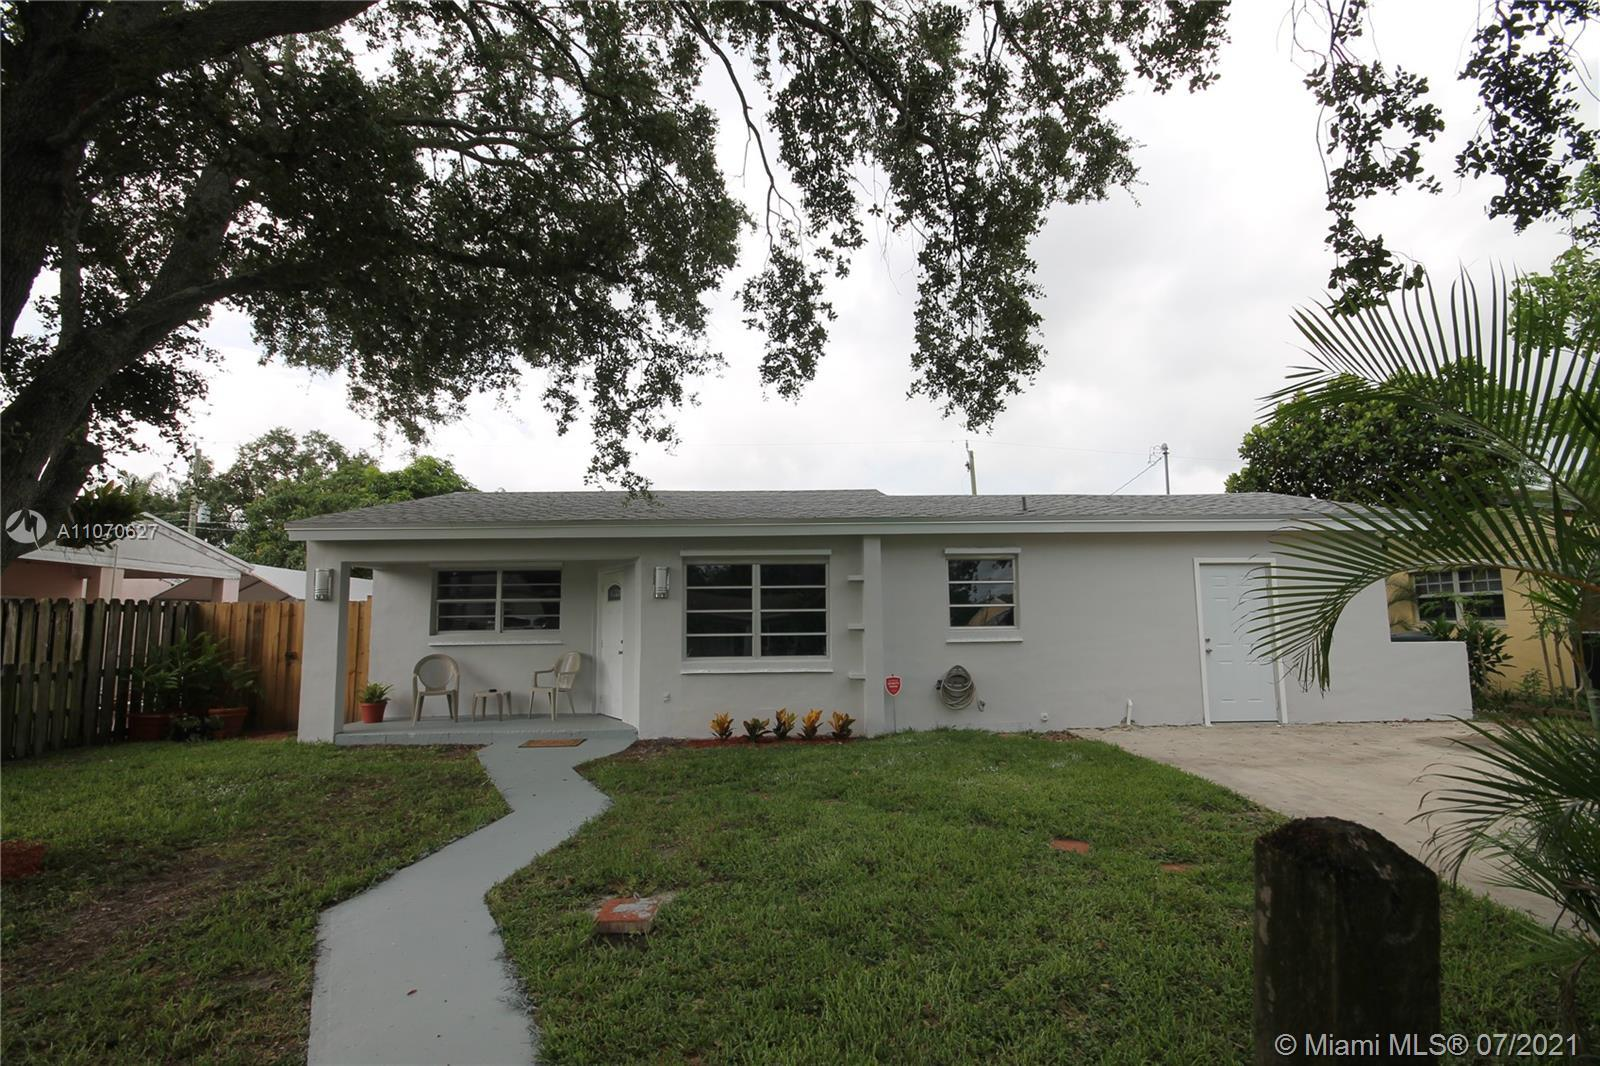 GORGEOUS MOVE-IN READY 3 BED 2 BATH HOME. THIS HOME IS VERY WELL KEPT AND FEATURES**A BONUS 1/1 CONV